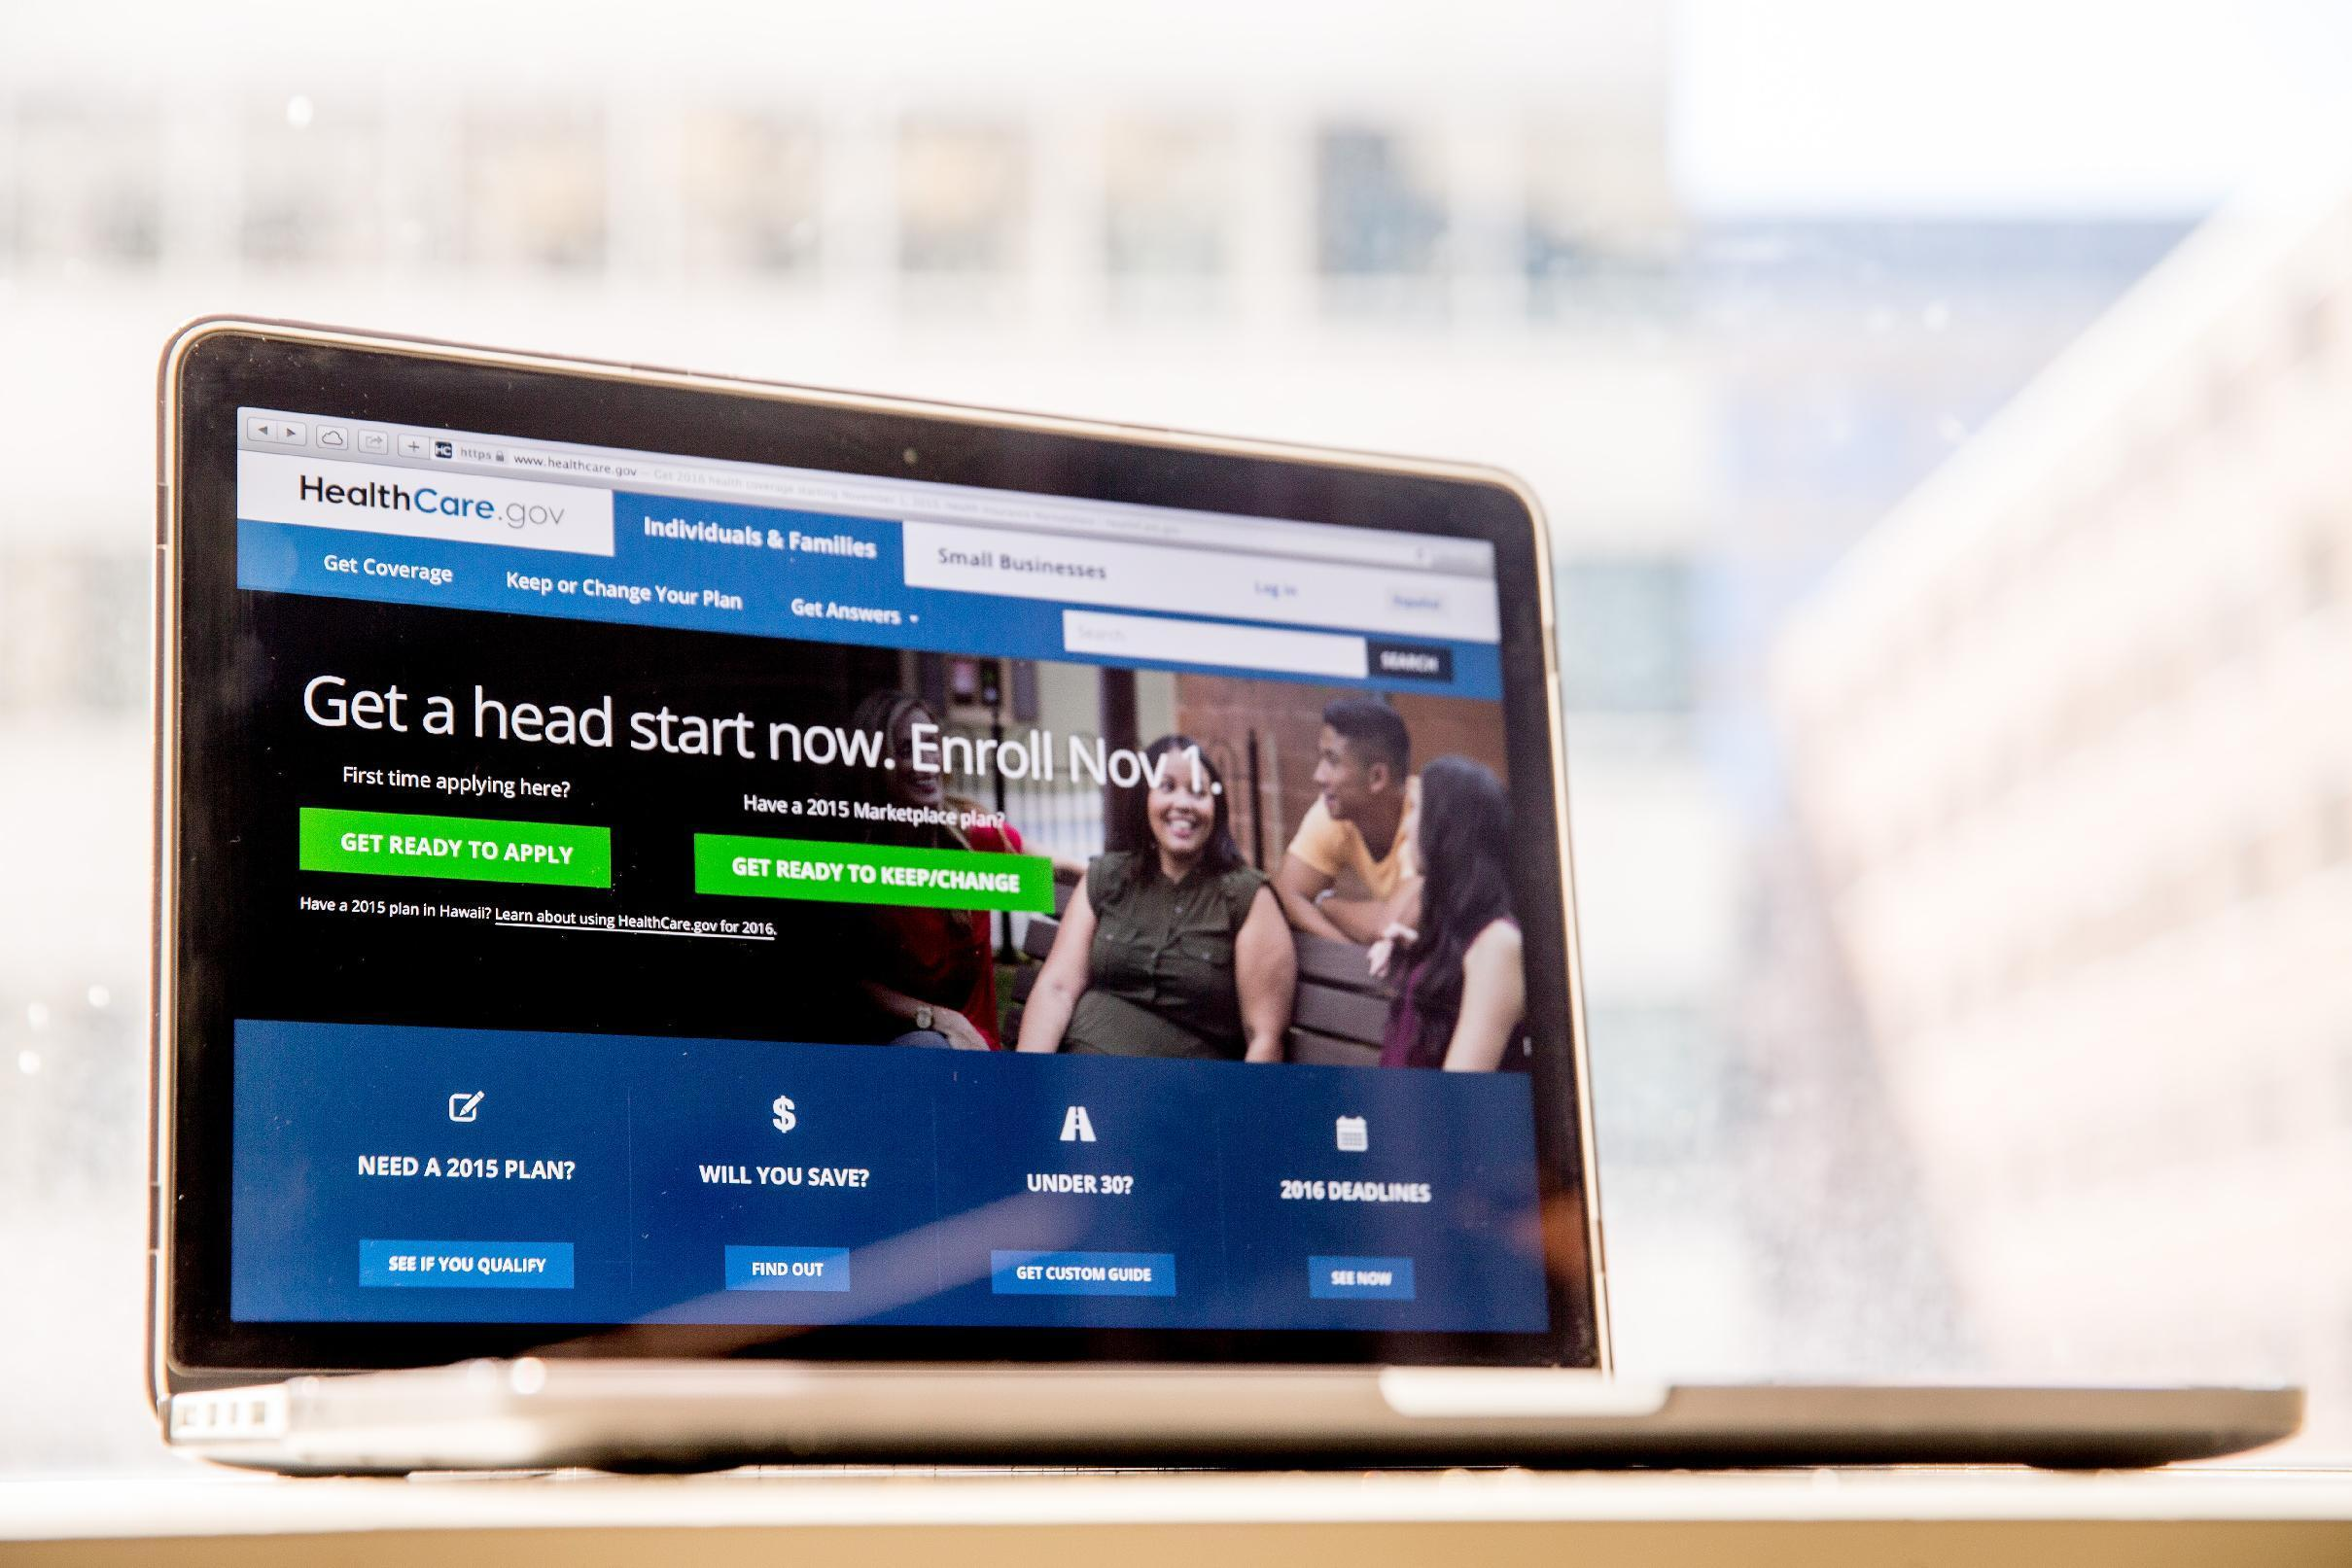 APNewsBreak: Gov't health insurance website getting upgrades